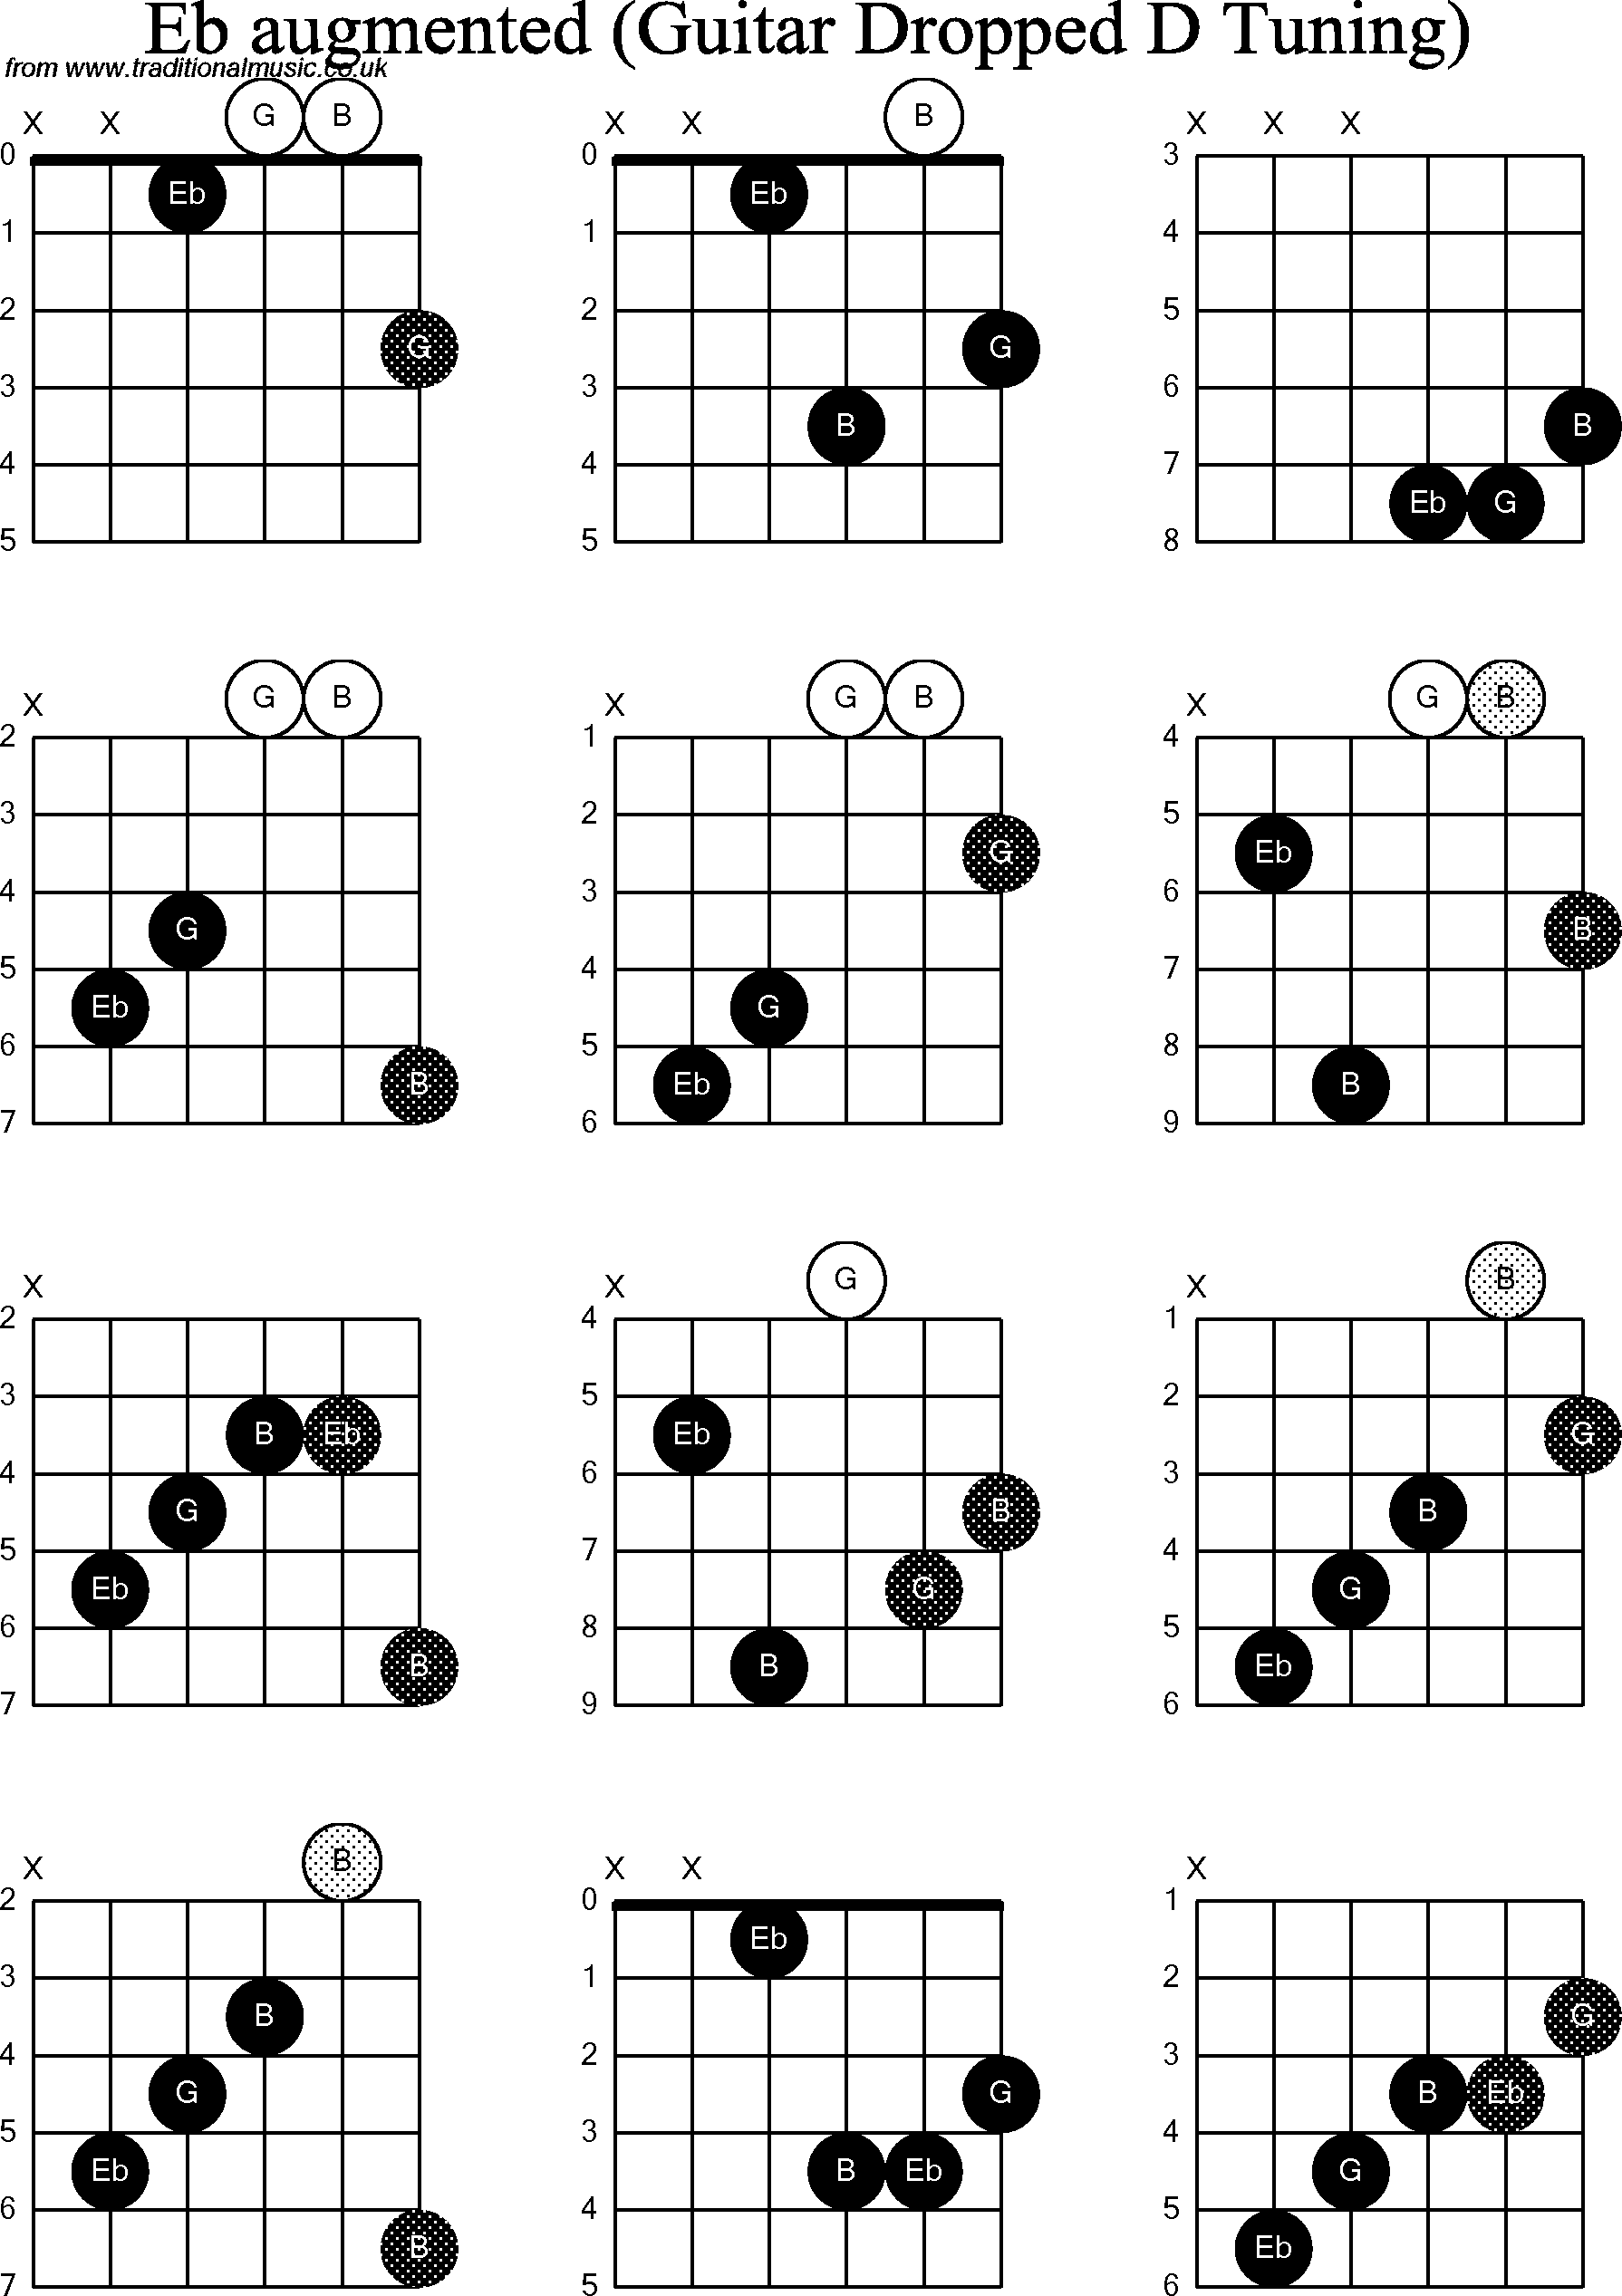 Chord diagrams for Dropped D Guitar(DADGBE), Eb Augmented